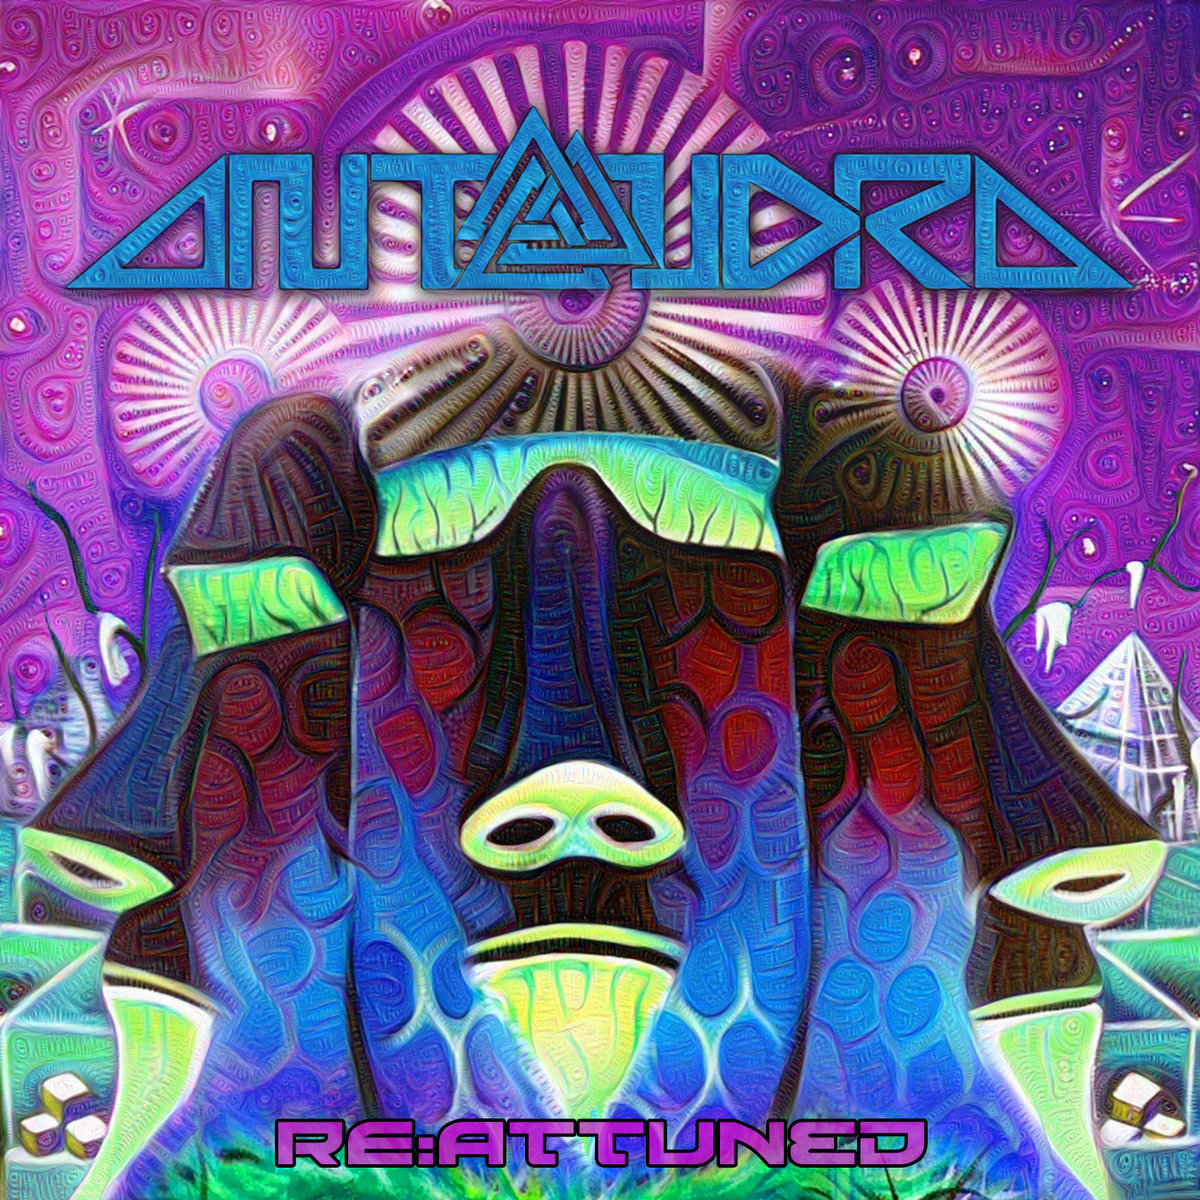 Antandra - Mutation (In Bloom Remix) @ 'RE:ATTUNED' album (ambient, downtempo)